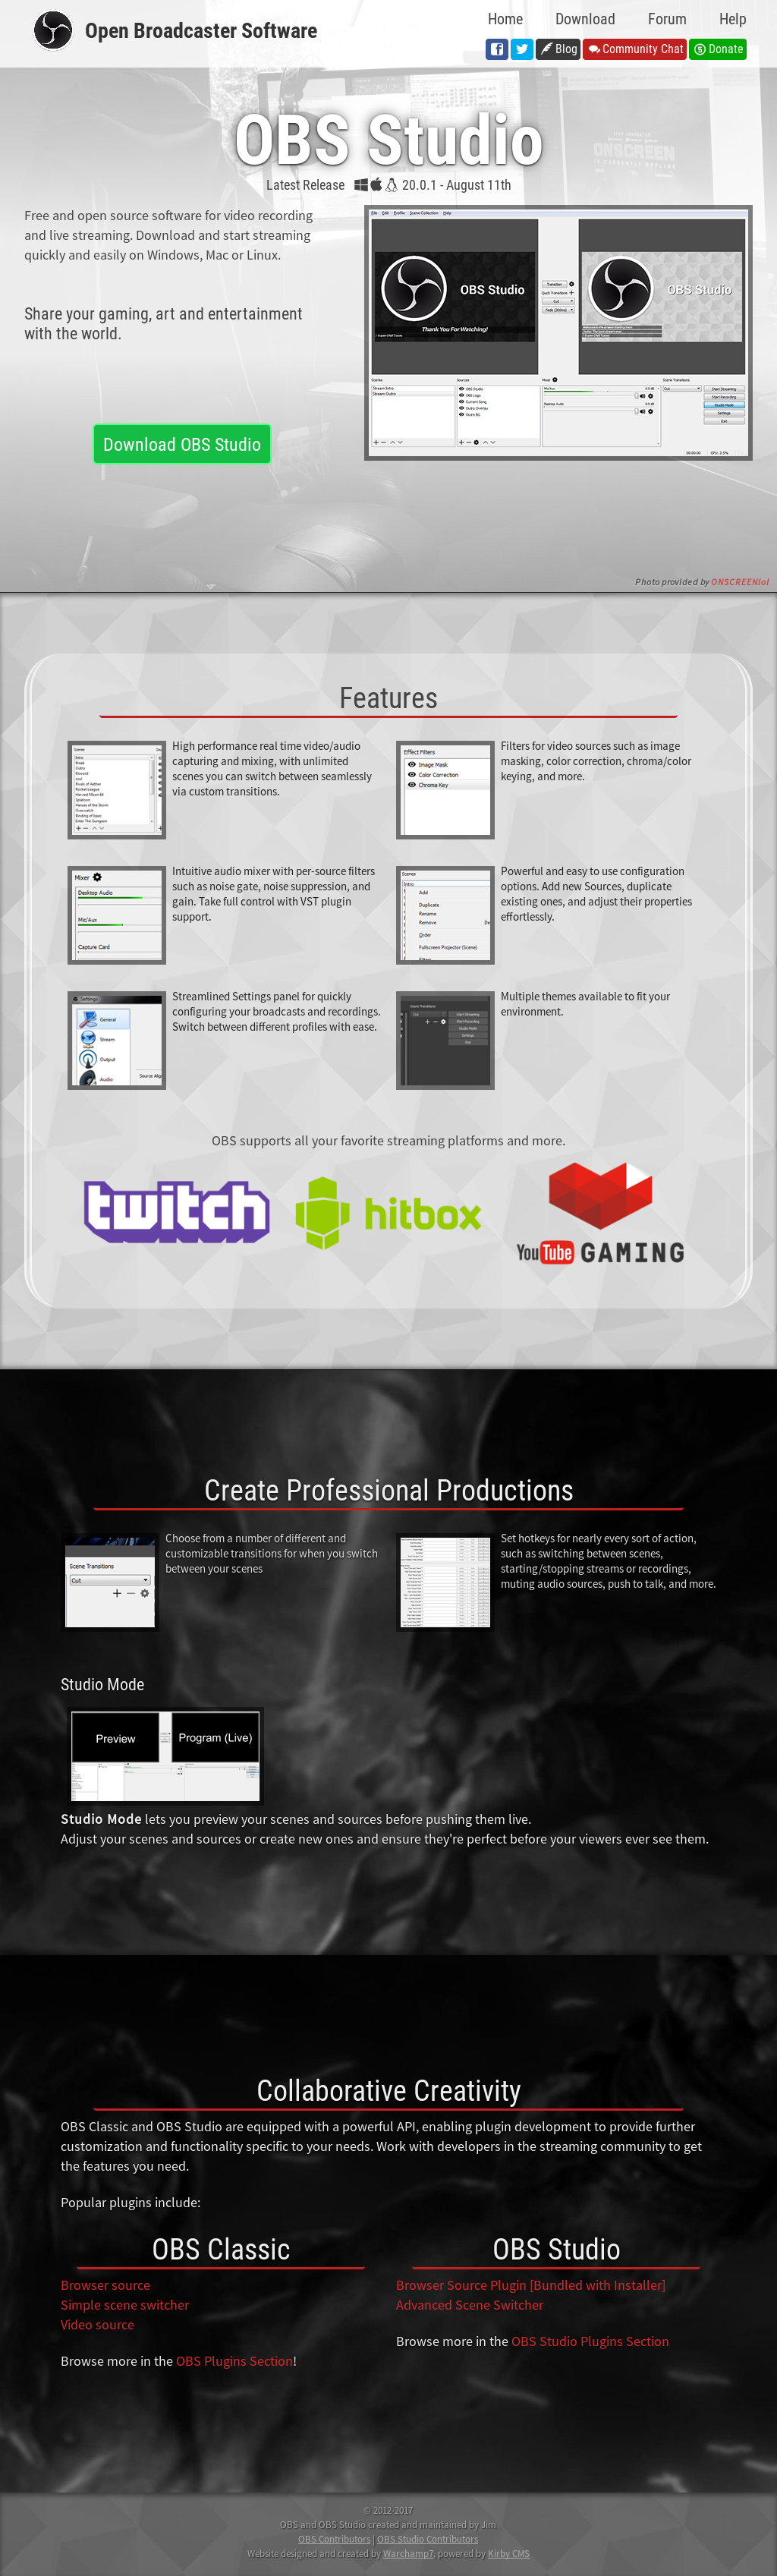 Open Broadcaster Software Competitors, Revenue and Employees